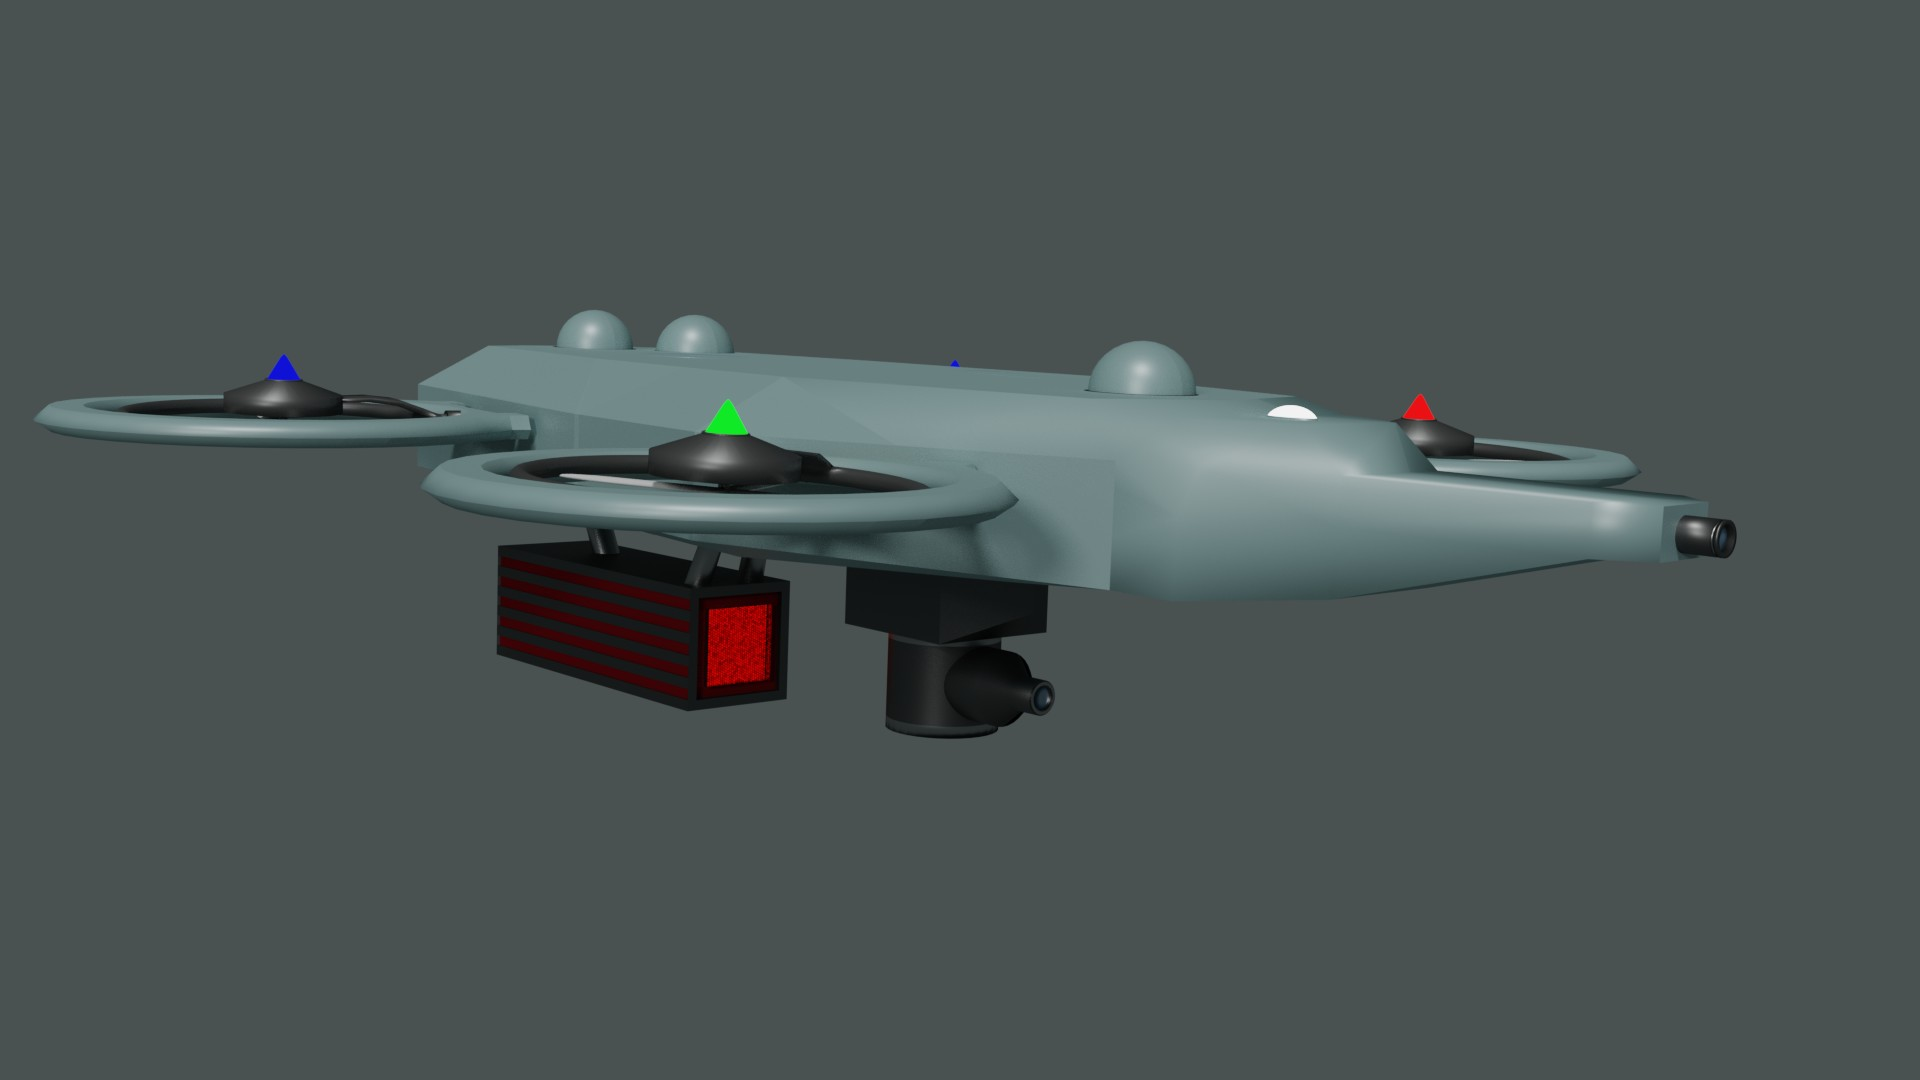 Sensor drone preview image 2